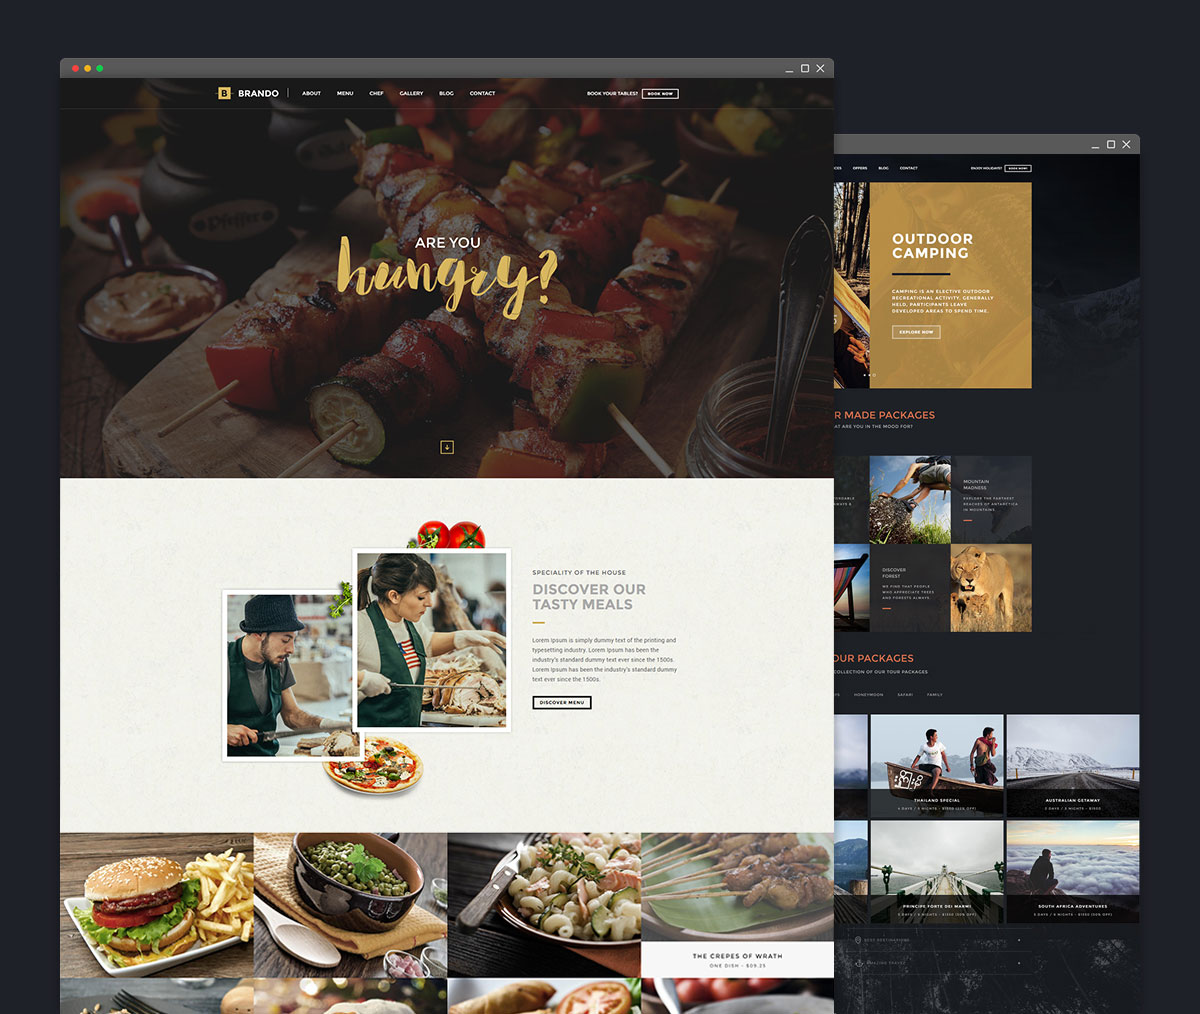 brando-best-one-page-wordpress-themes